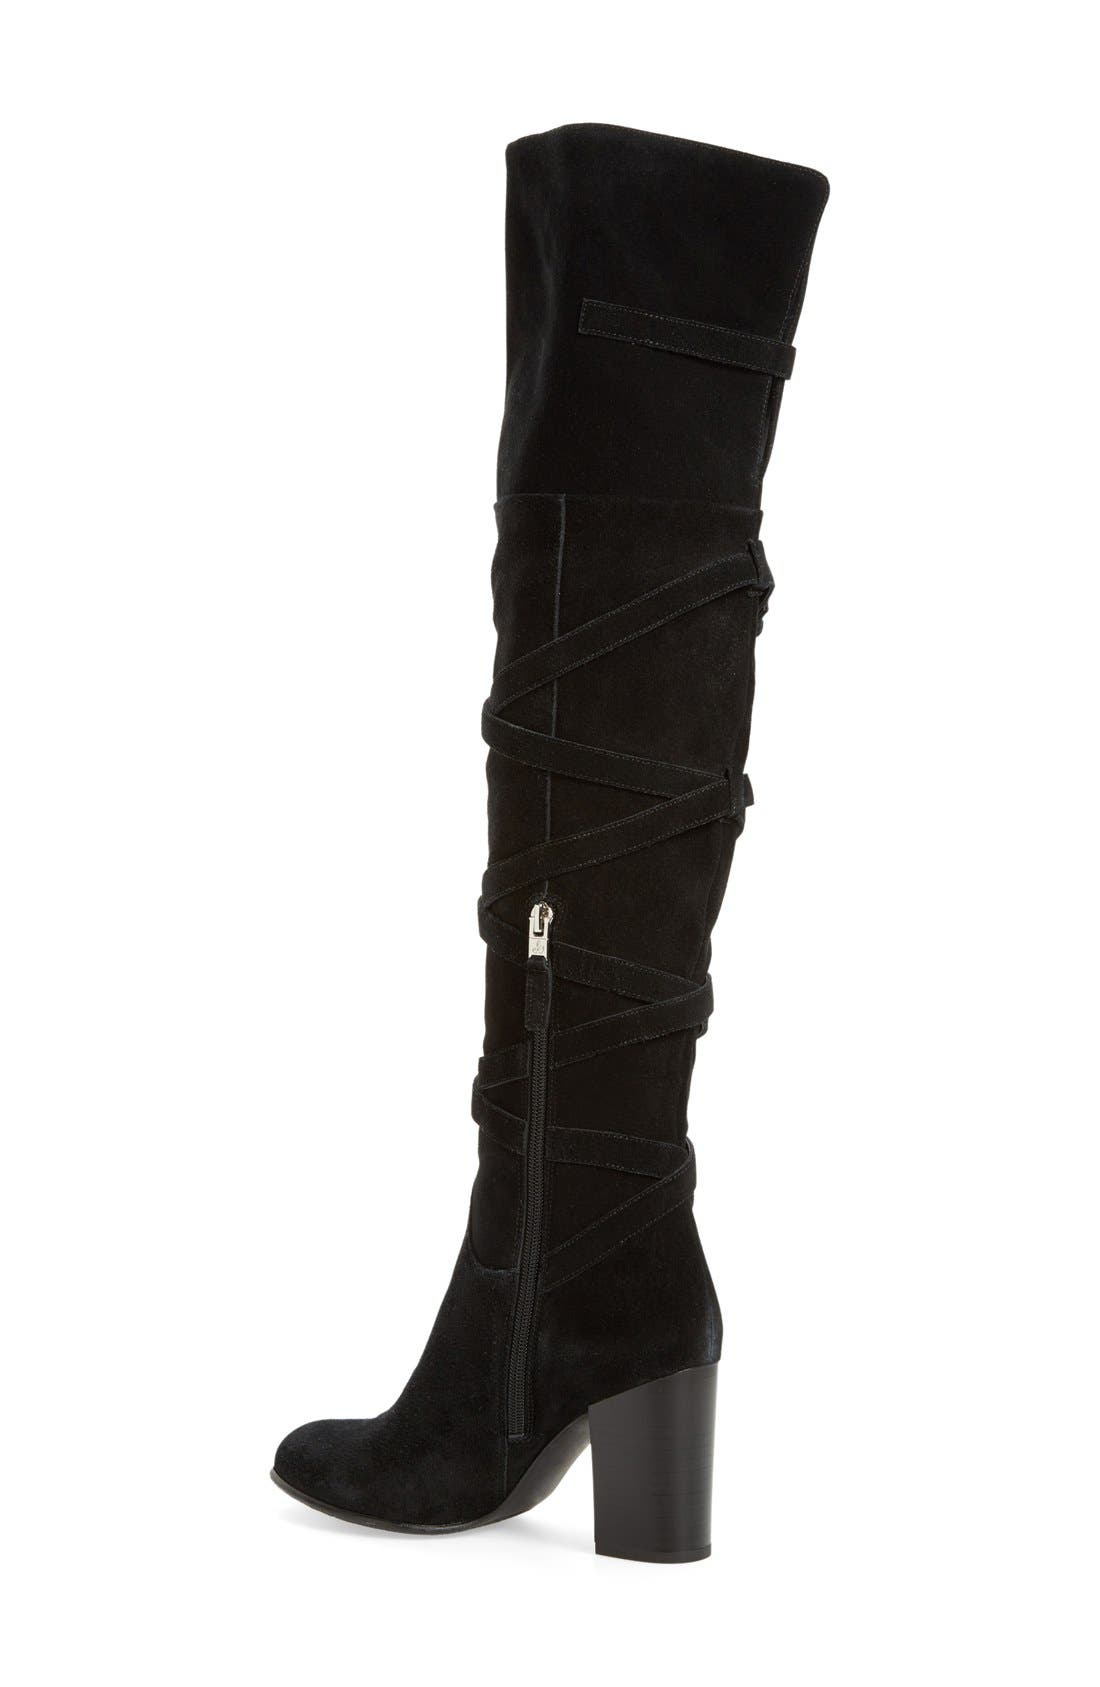 'Sable' Over the Knee Boot,                             Alternate thumbnail 2, color,                             002